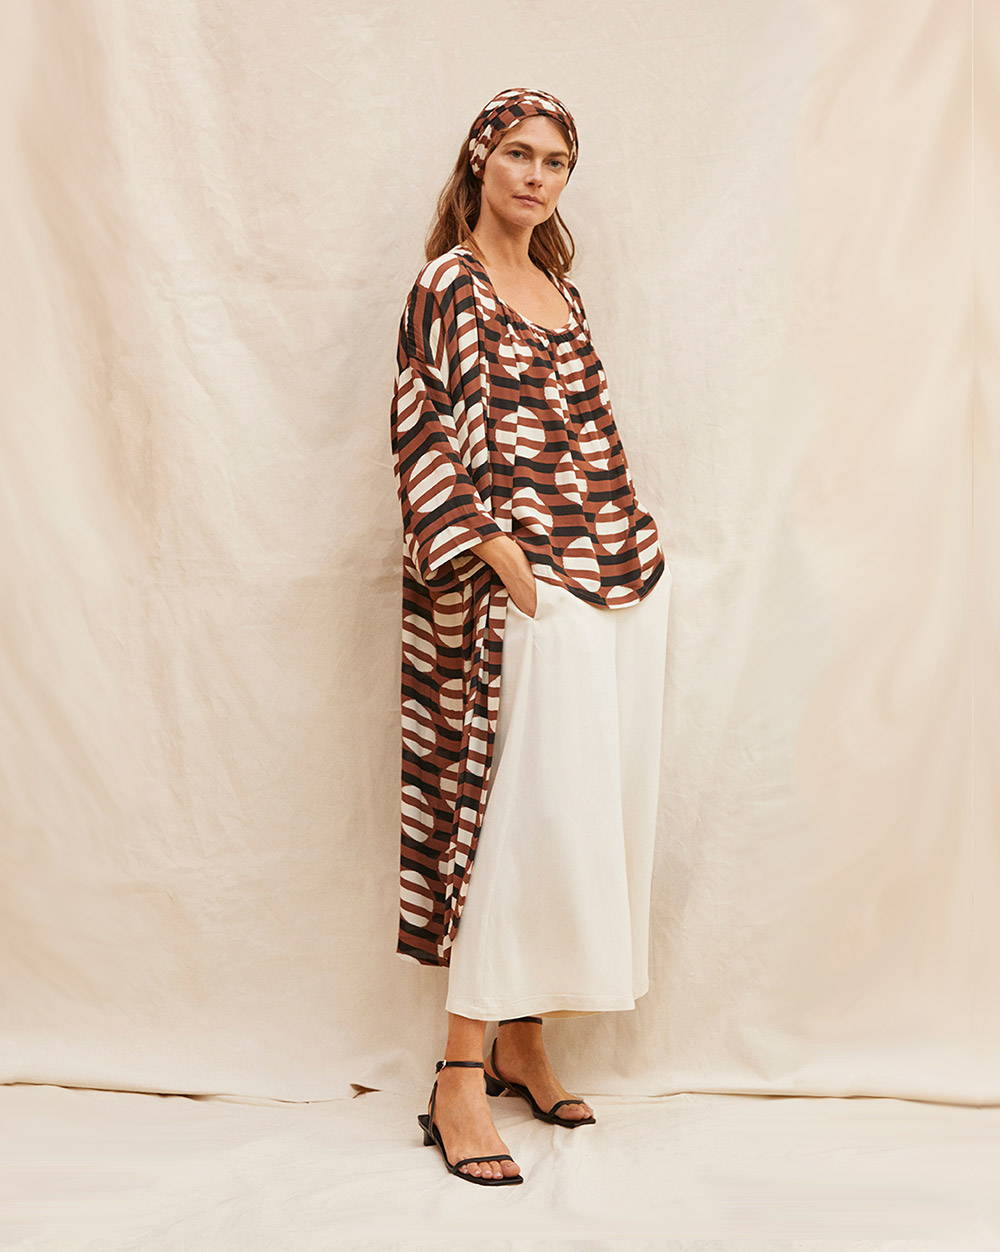 Jossla Duster with the Edie Tank Top and Pamel Culotte - Editorial